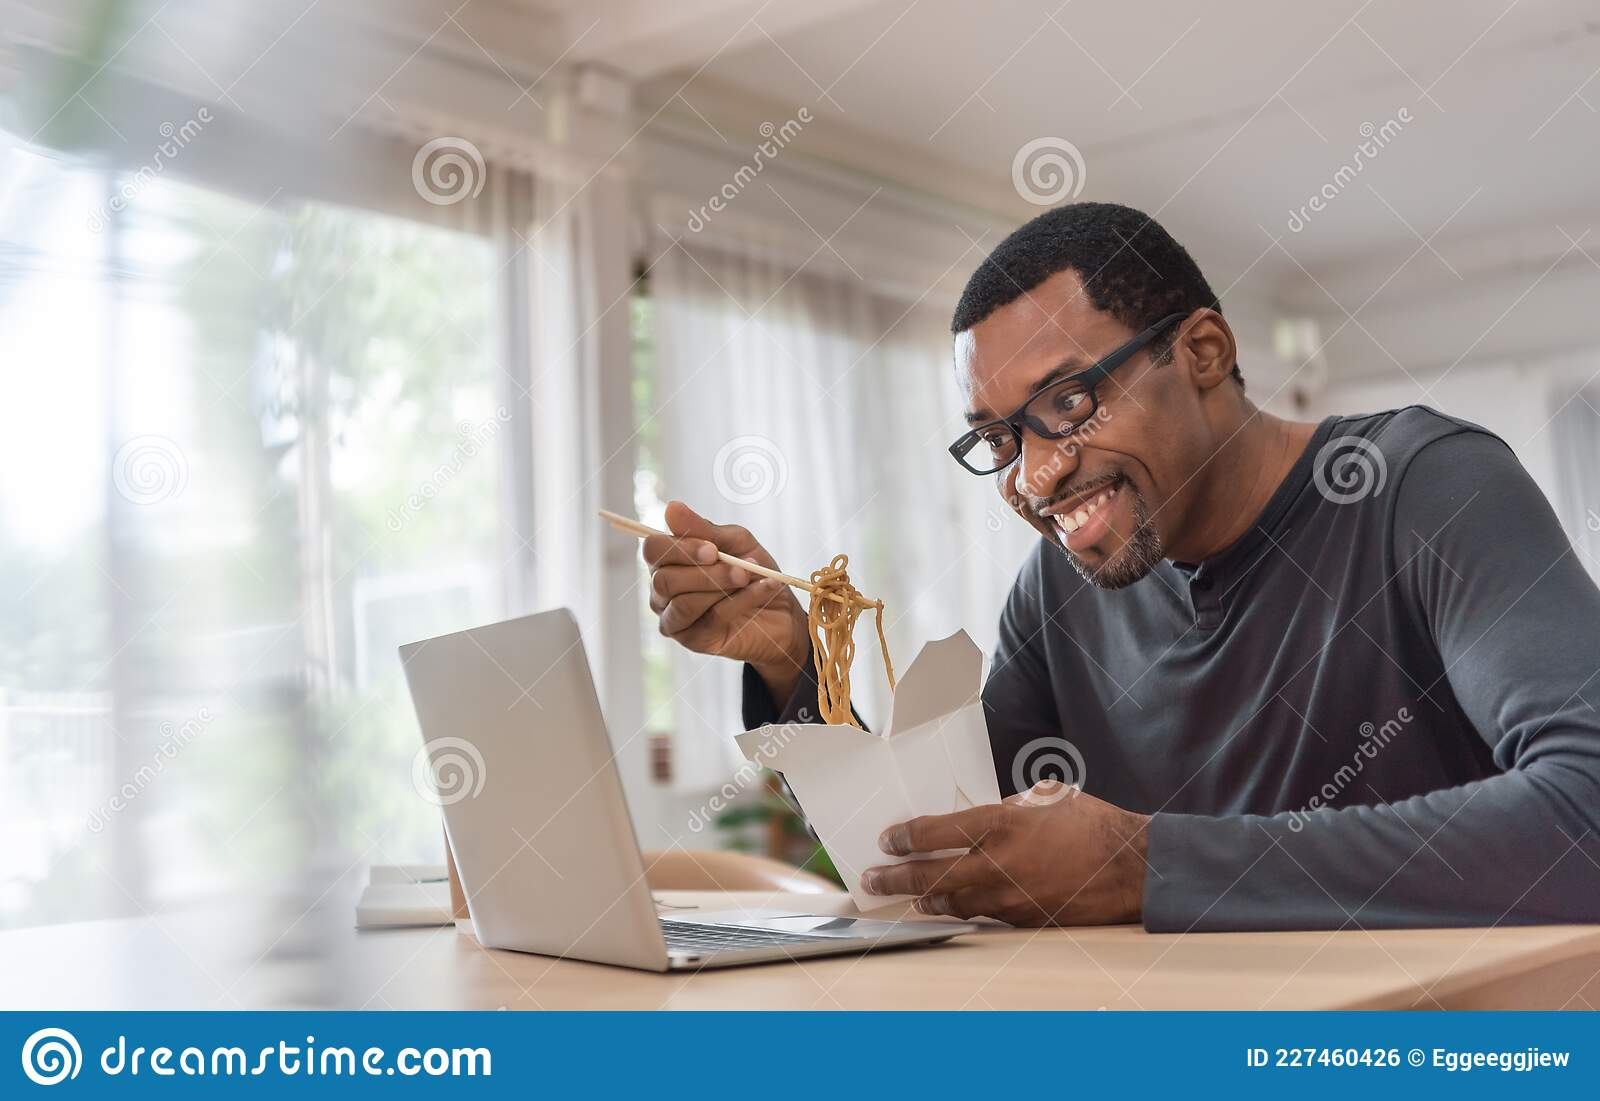 African American Man Eating Noodle With His Friends While